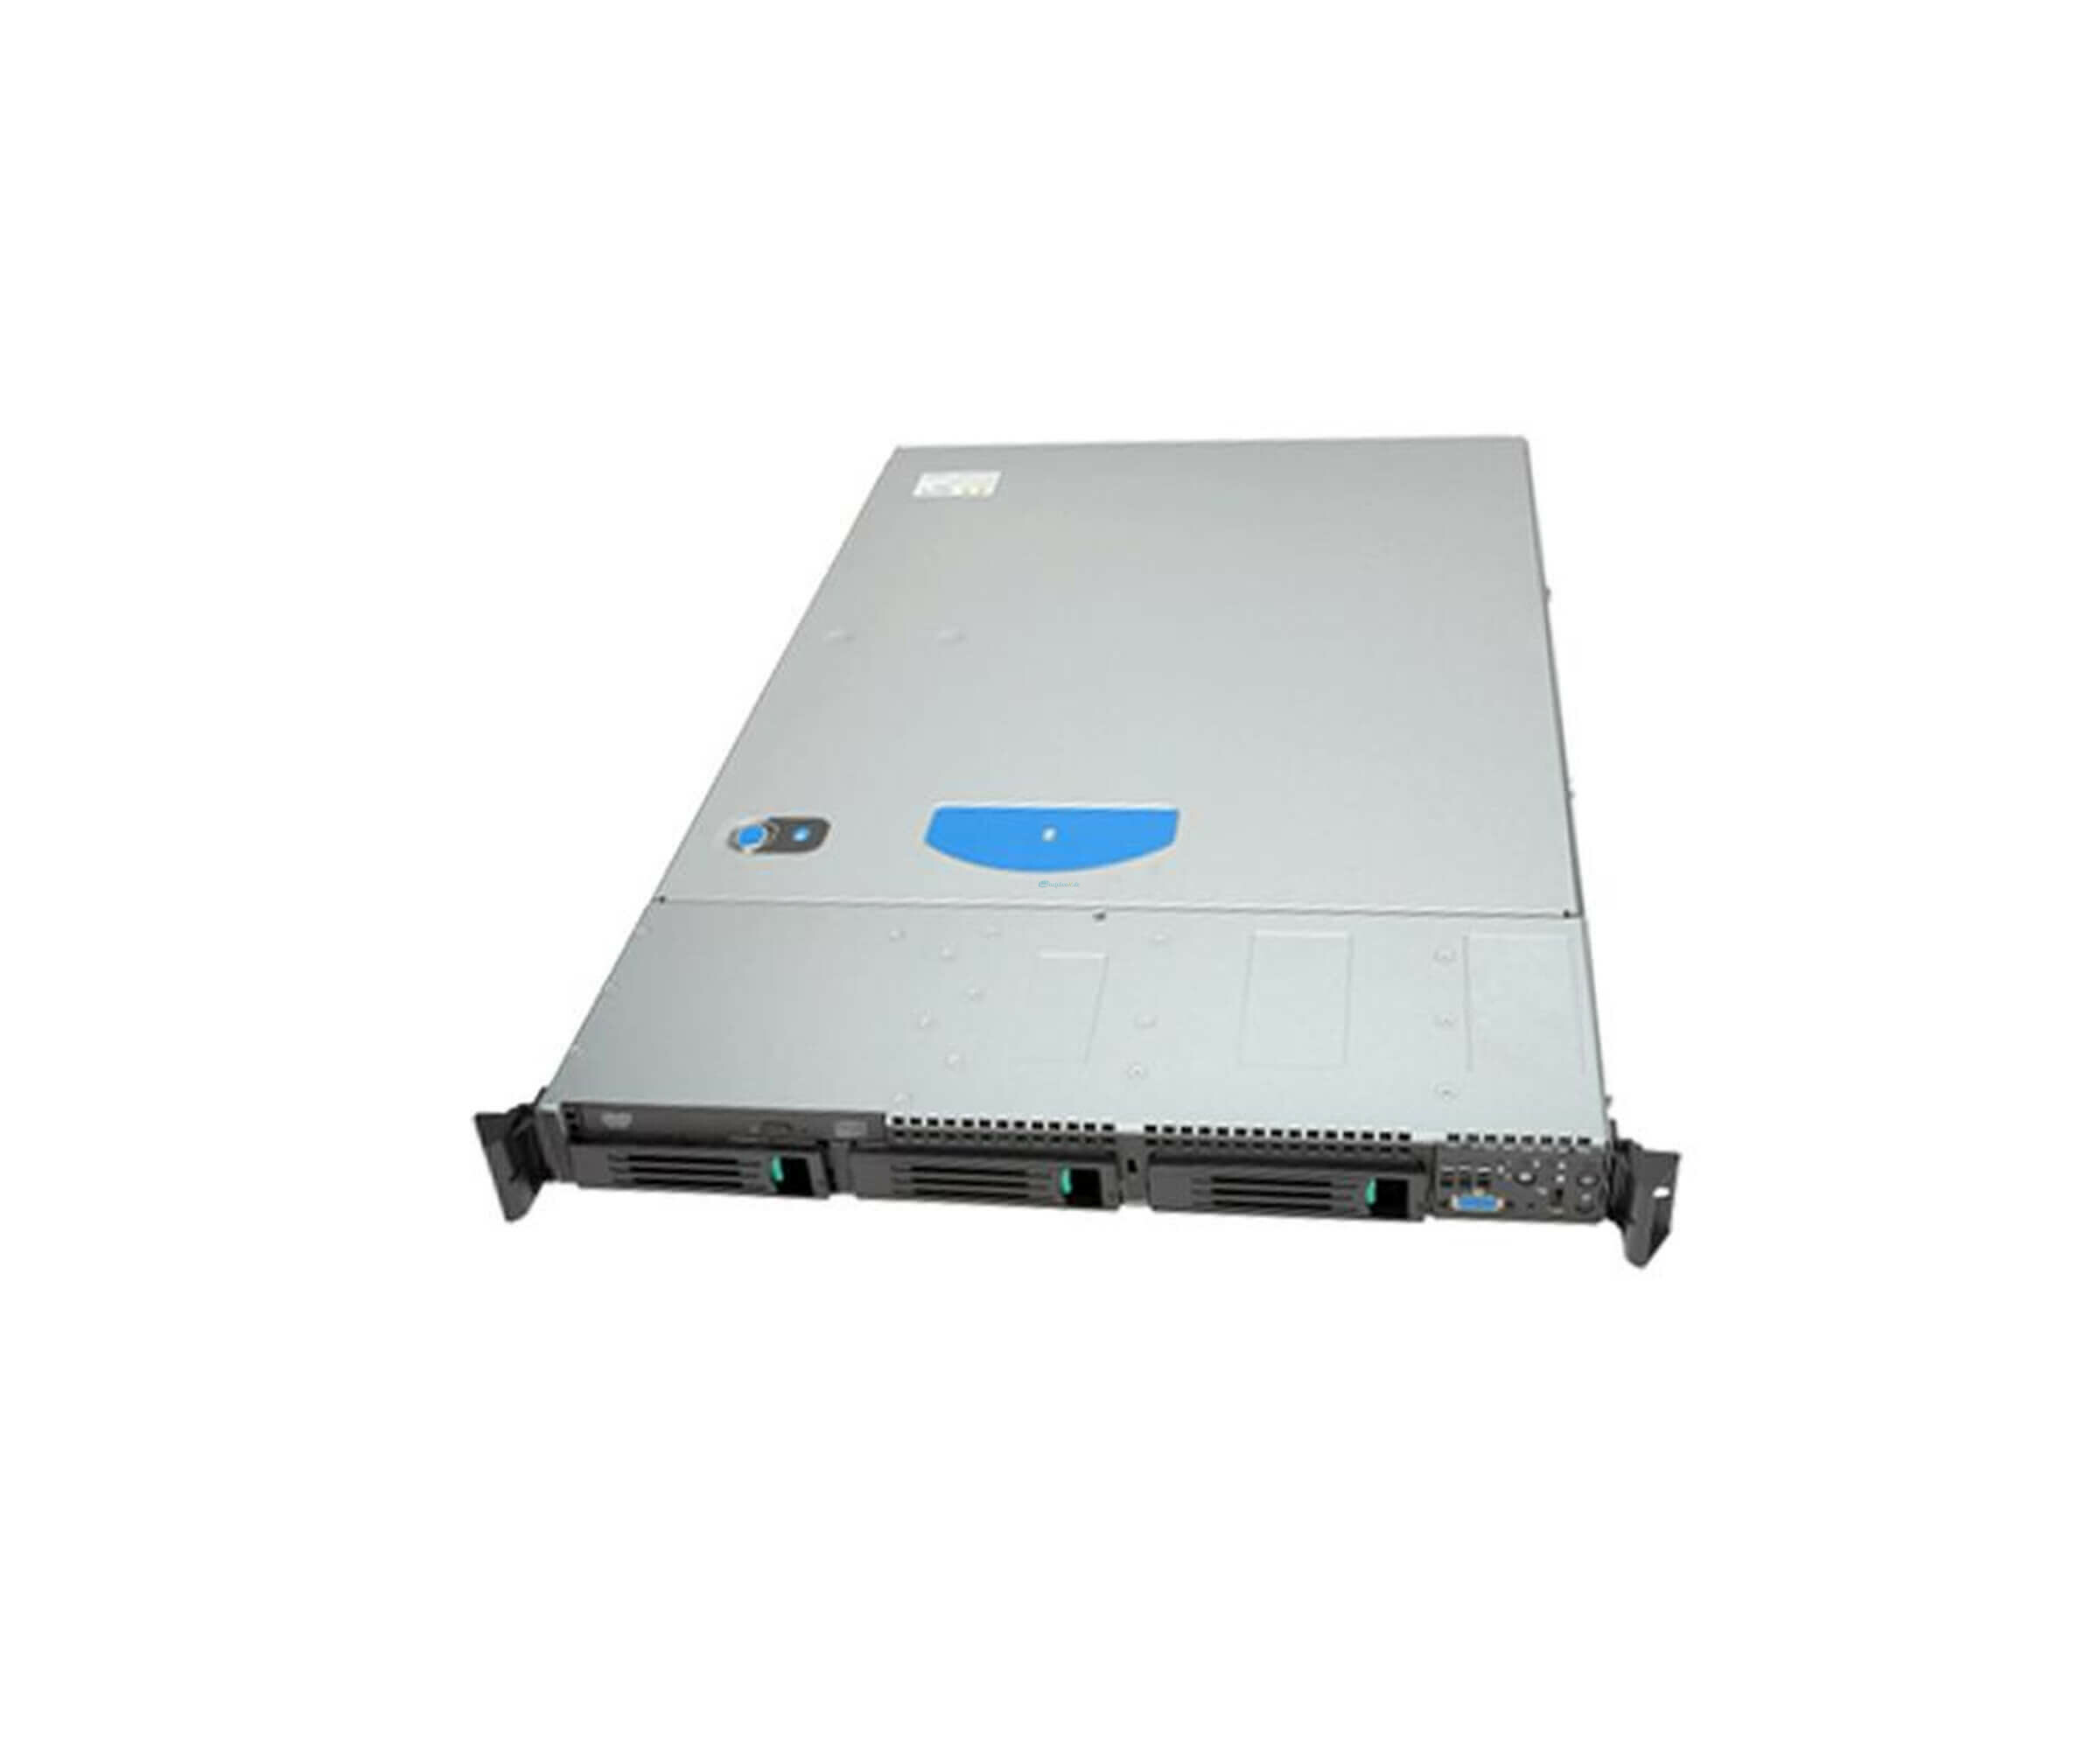 Intel Server System SR1500AL - Rack - 1x E5335 2,0GHZ - RAM 2 GB - 250GB SATA - Gebraucht